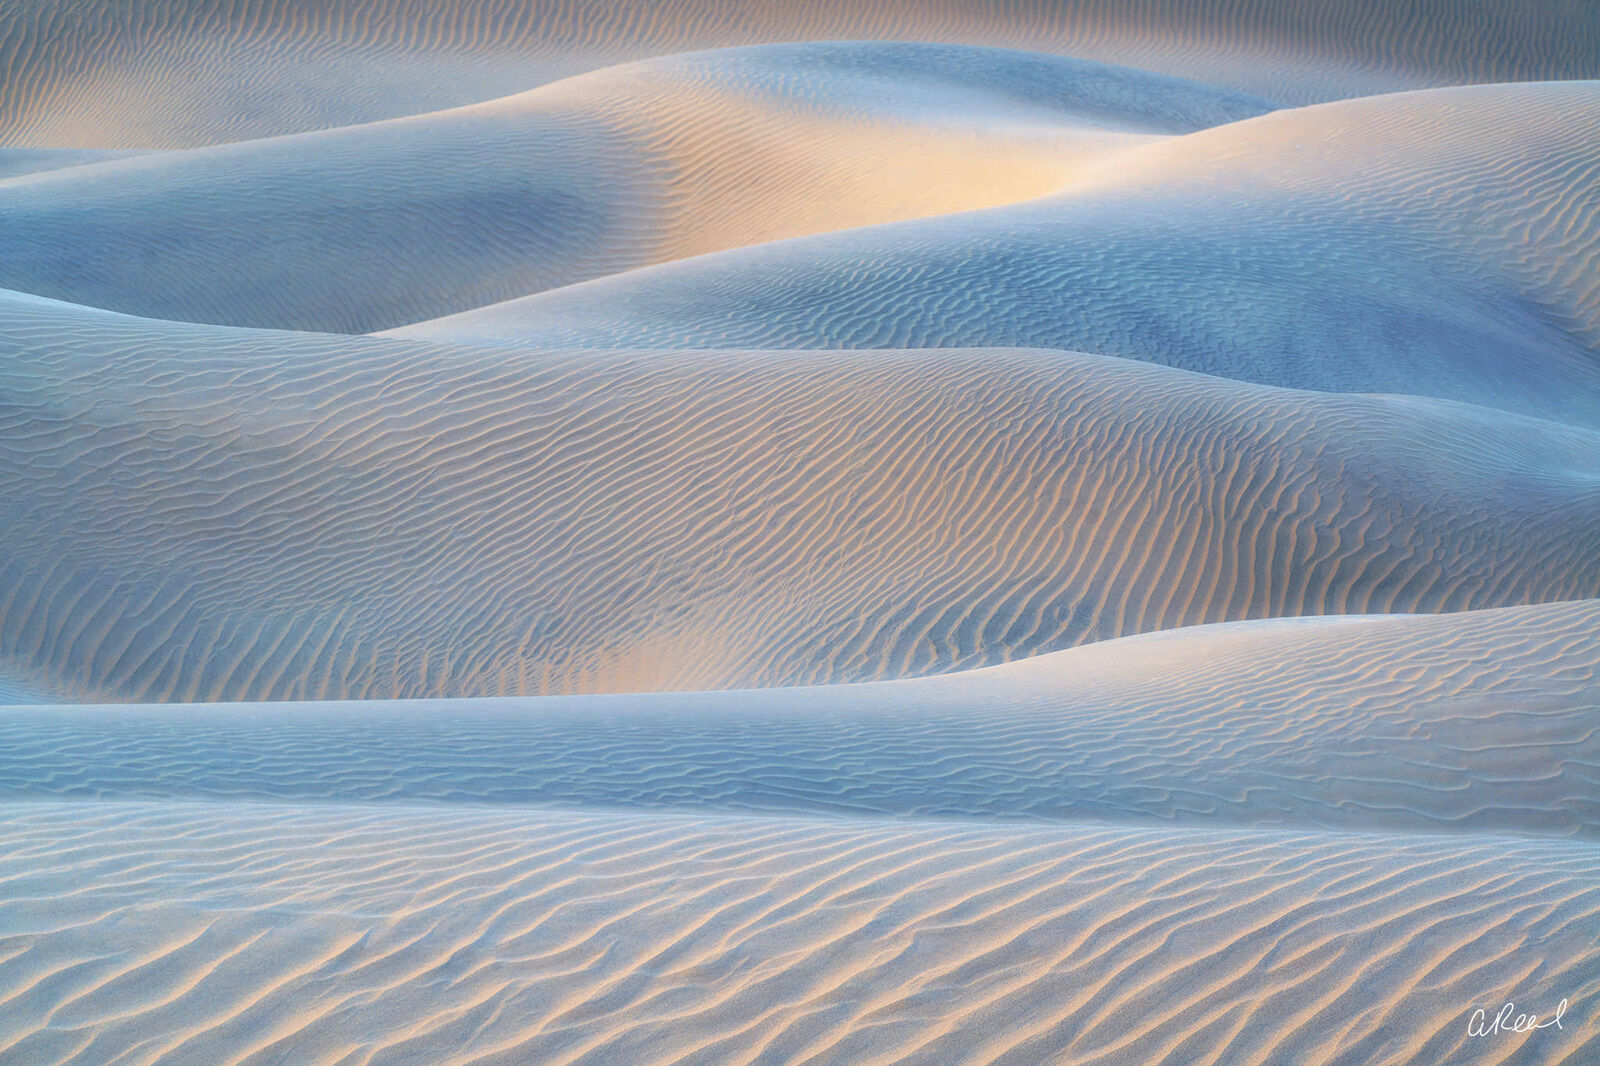 Mesquite Sand Dunes Appearing Like Waves Inside Death Valley National Park. , photo